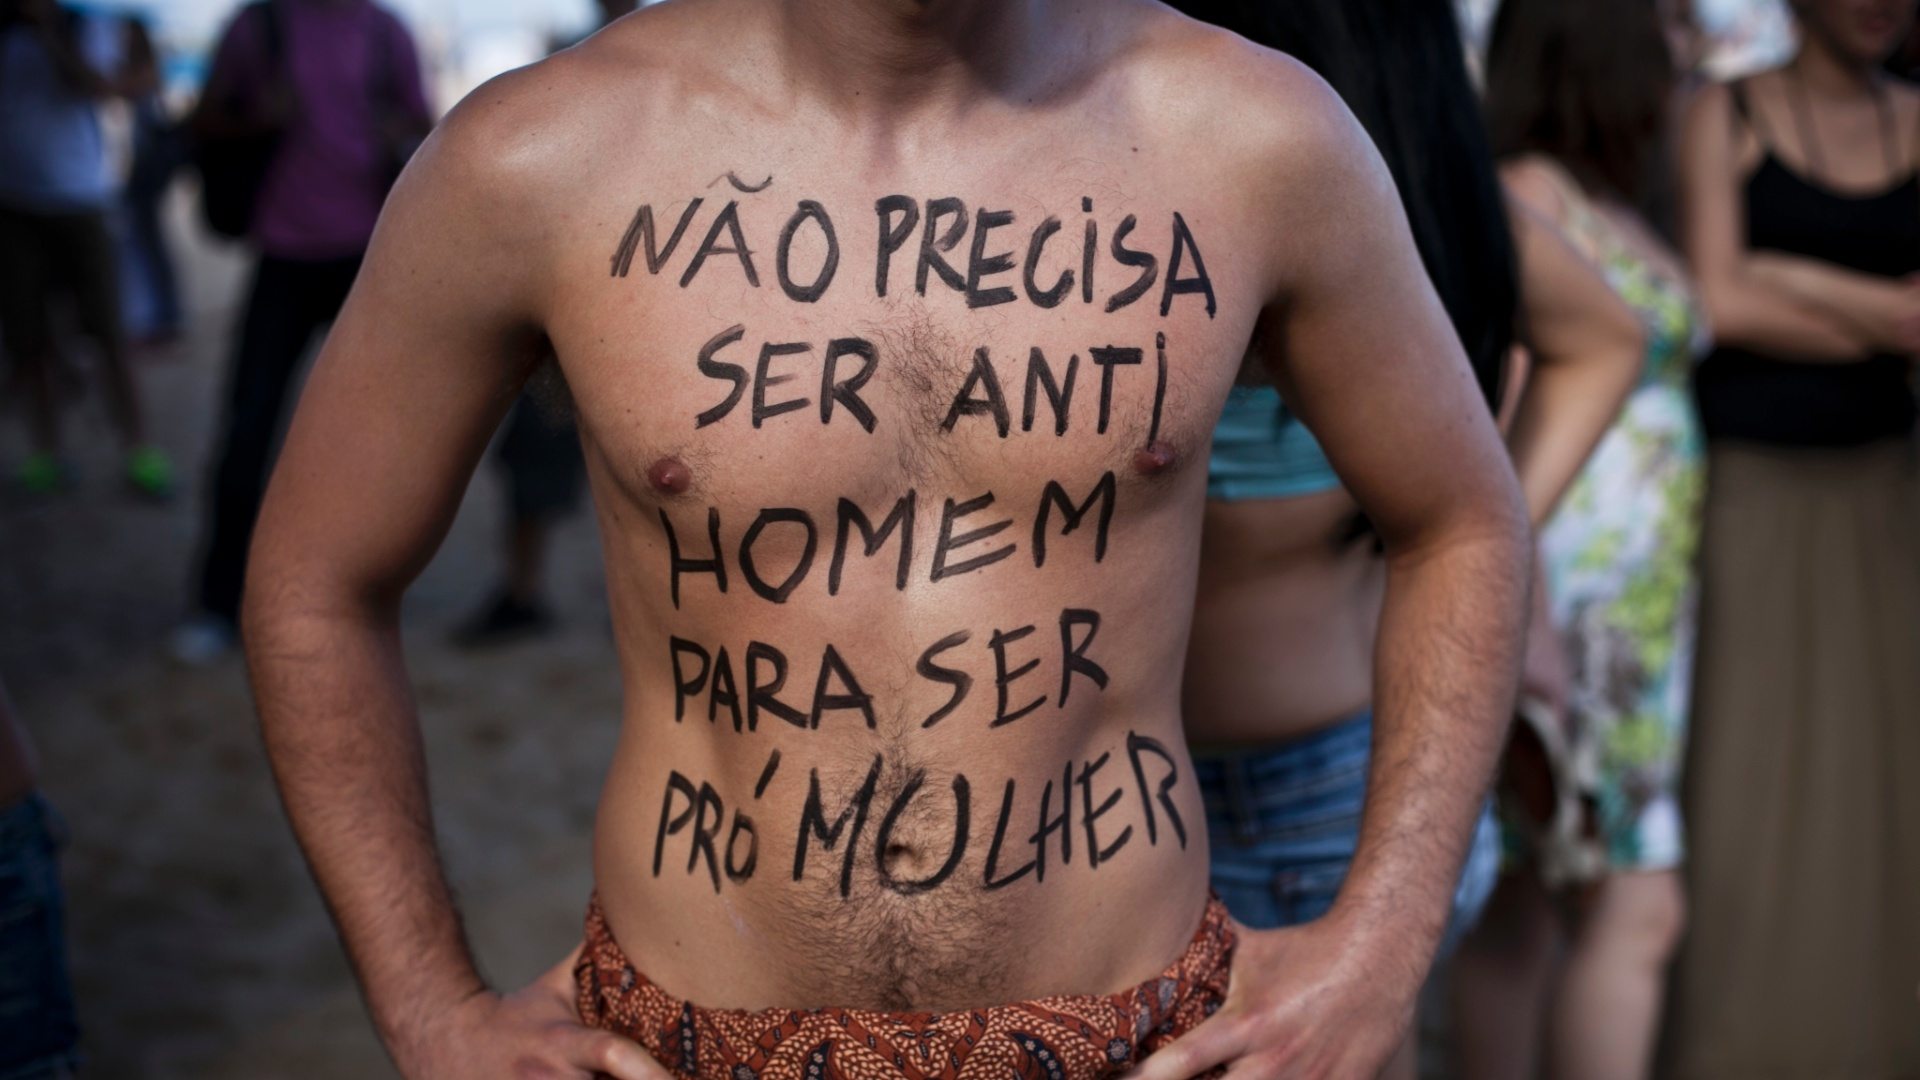 Homens tambm participaram da Marcha das Vadias no Rio de Janeiro. Neste sbado (26), pelo menos 14 cidades brasileiras organizaram a Marcha